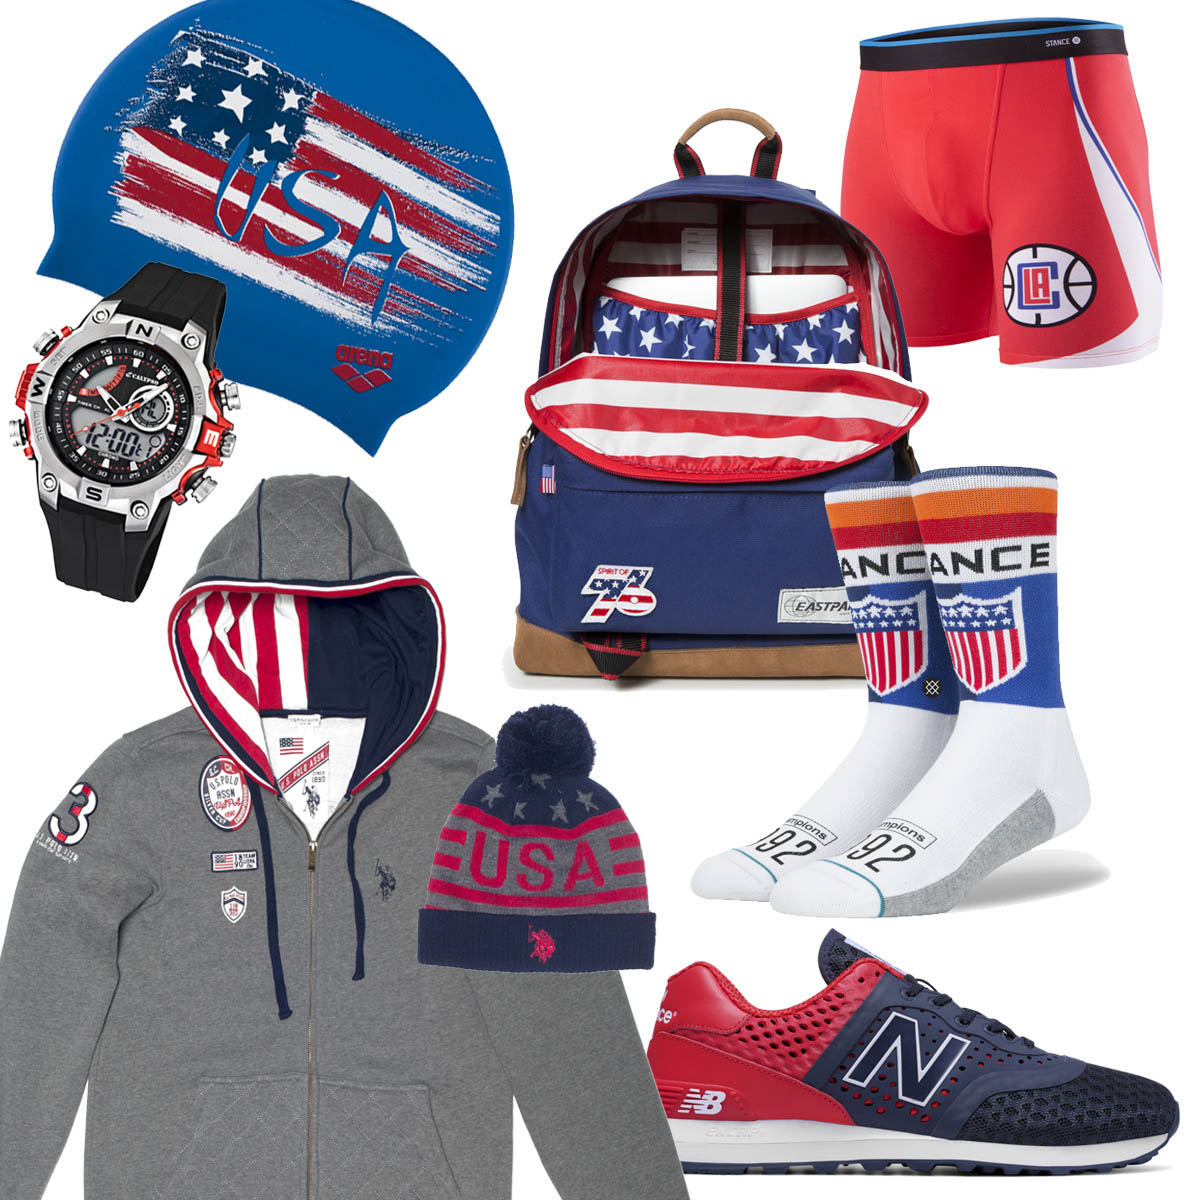 tetu-mode-usa-newbalance-arena-uspolo-eastpak